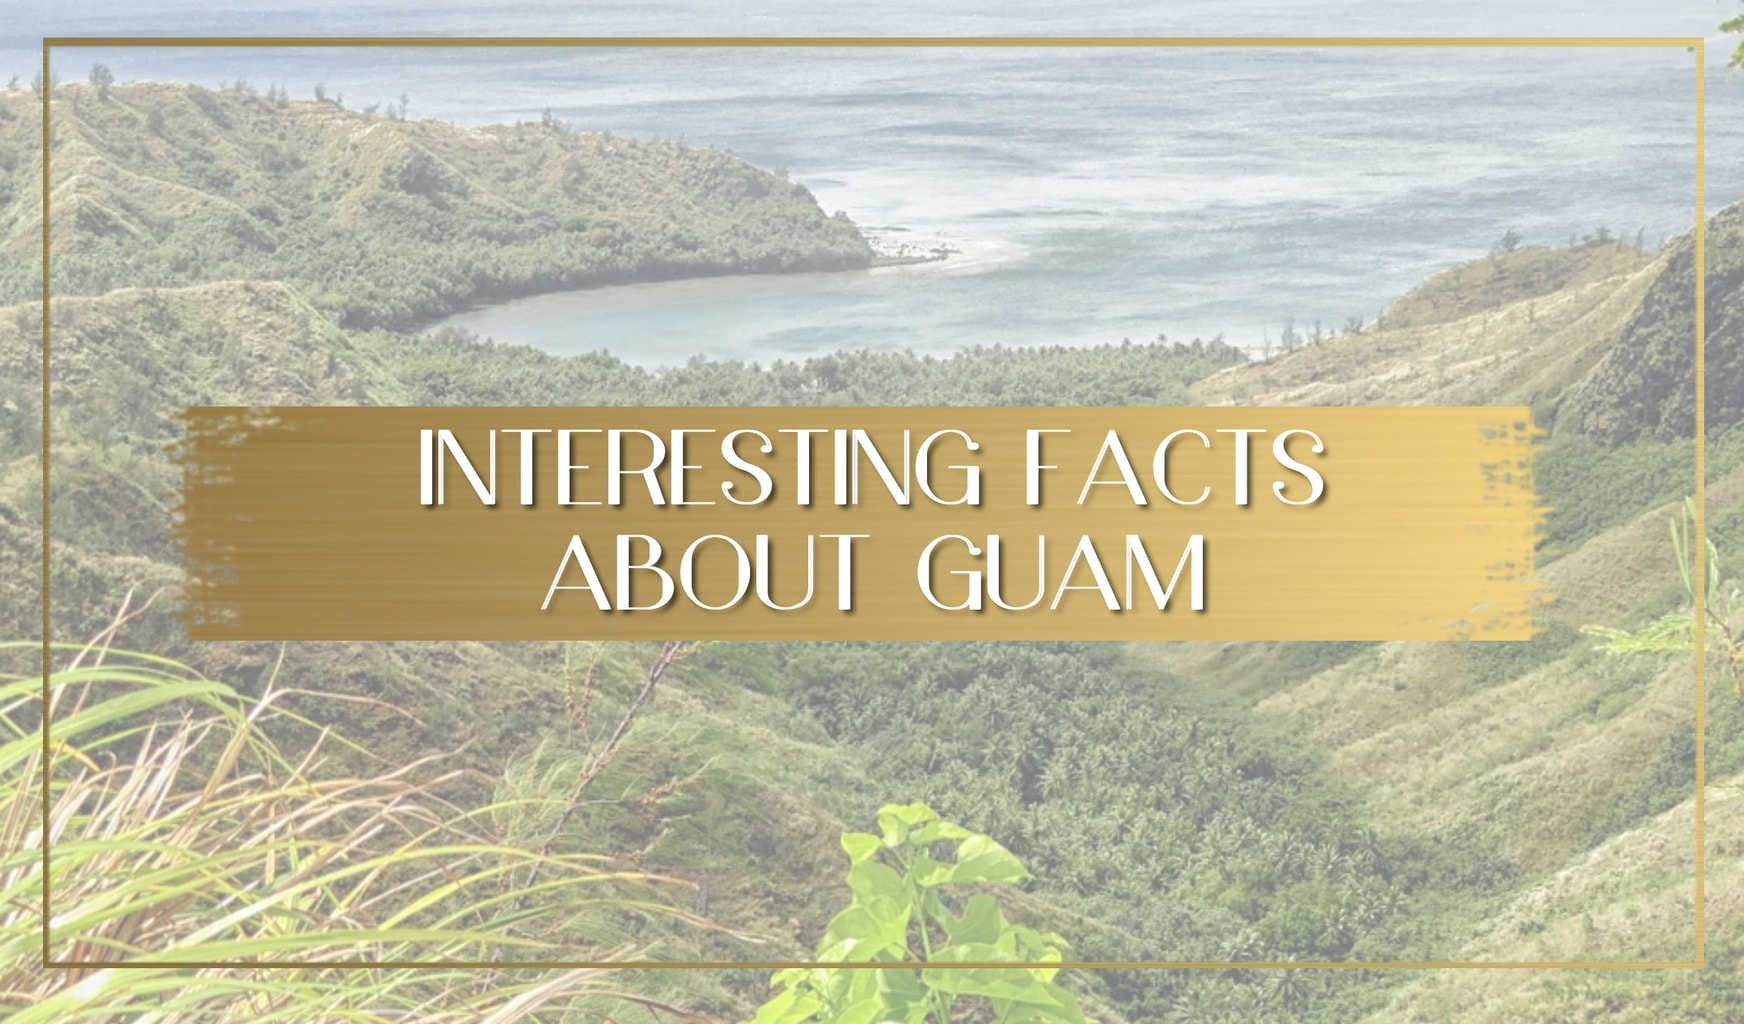 Facts about Guam main